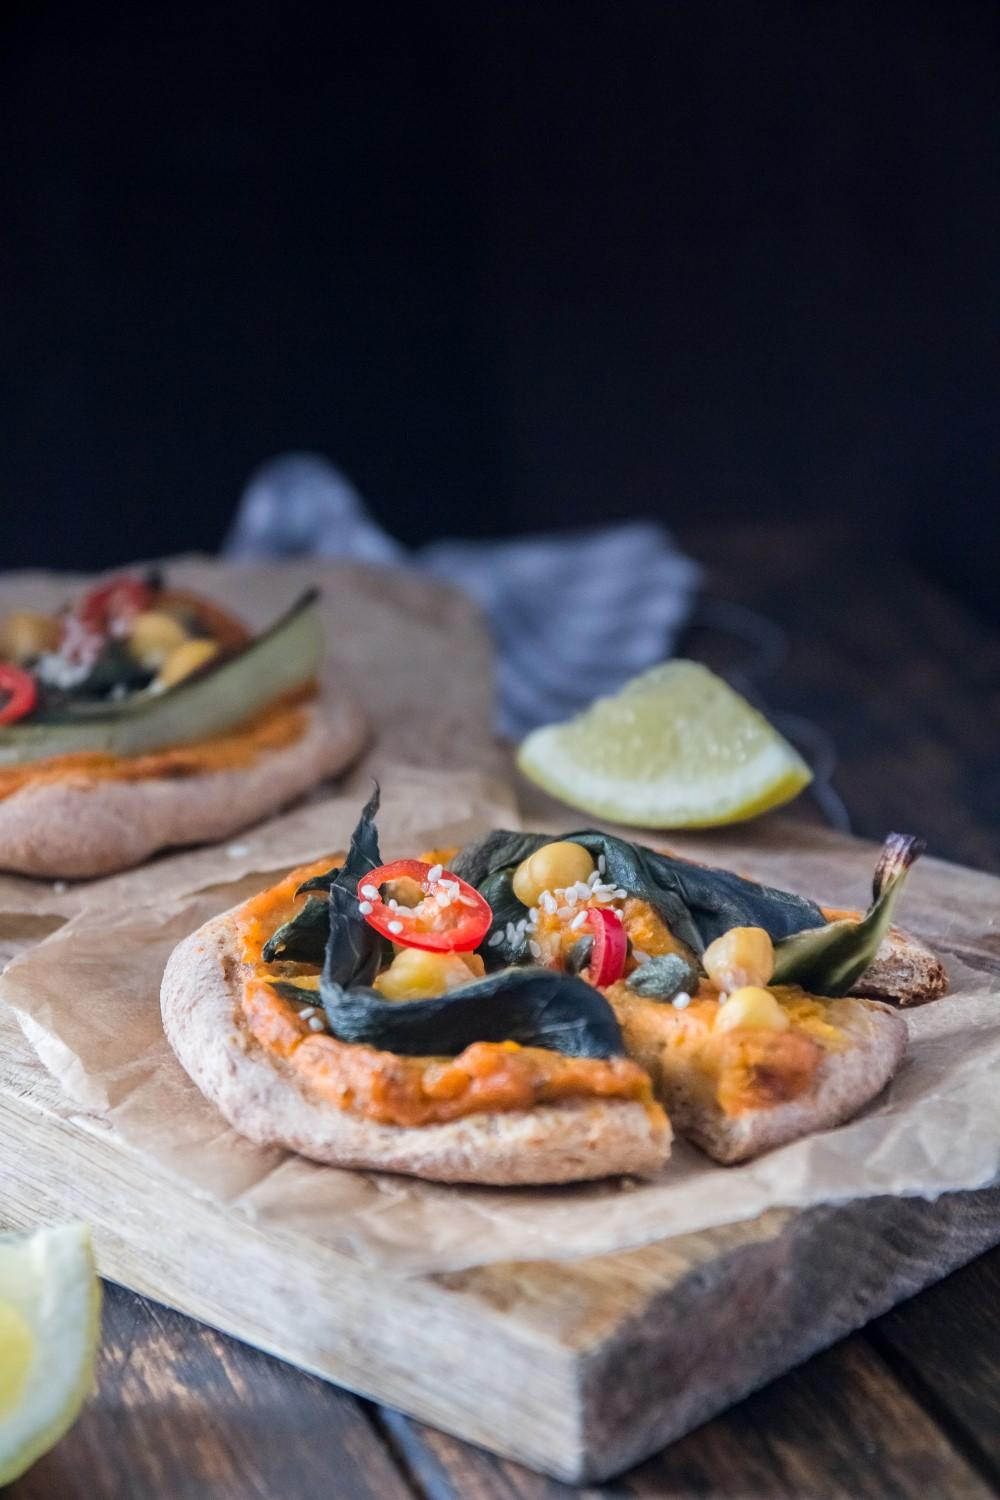 Use Your Noodles - Mini Pumpkin Pizzas